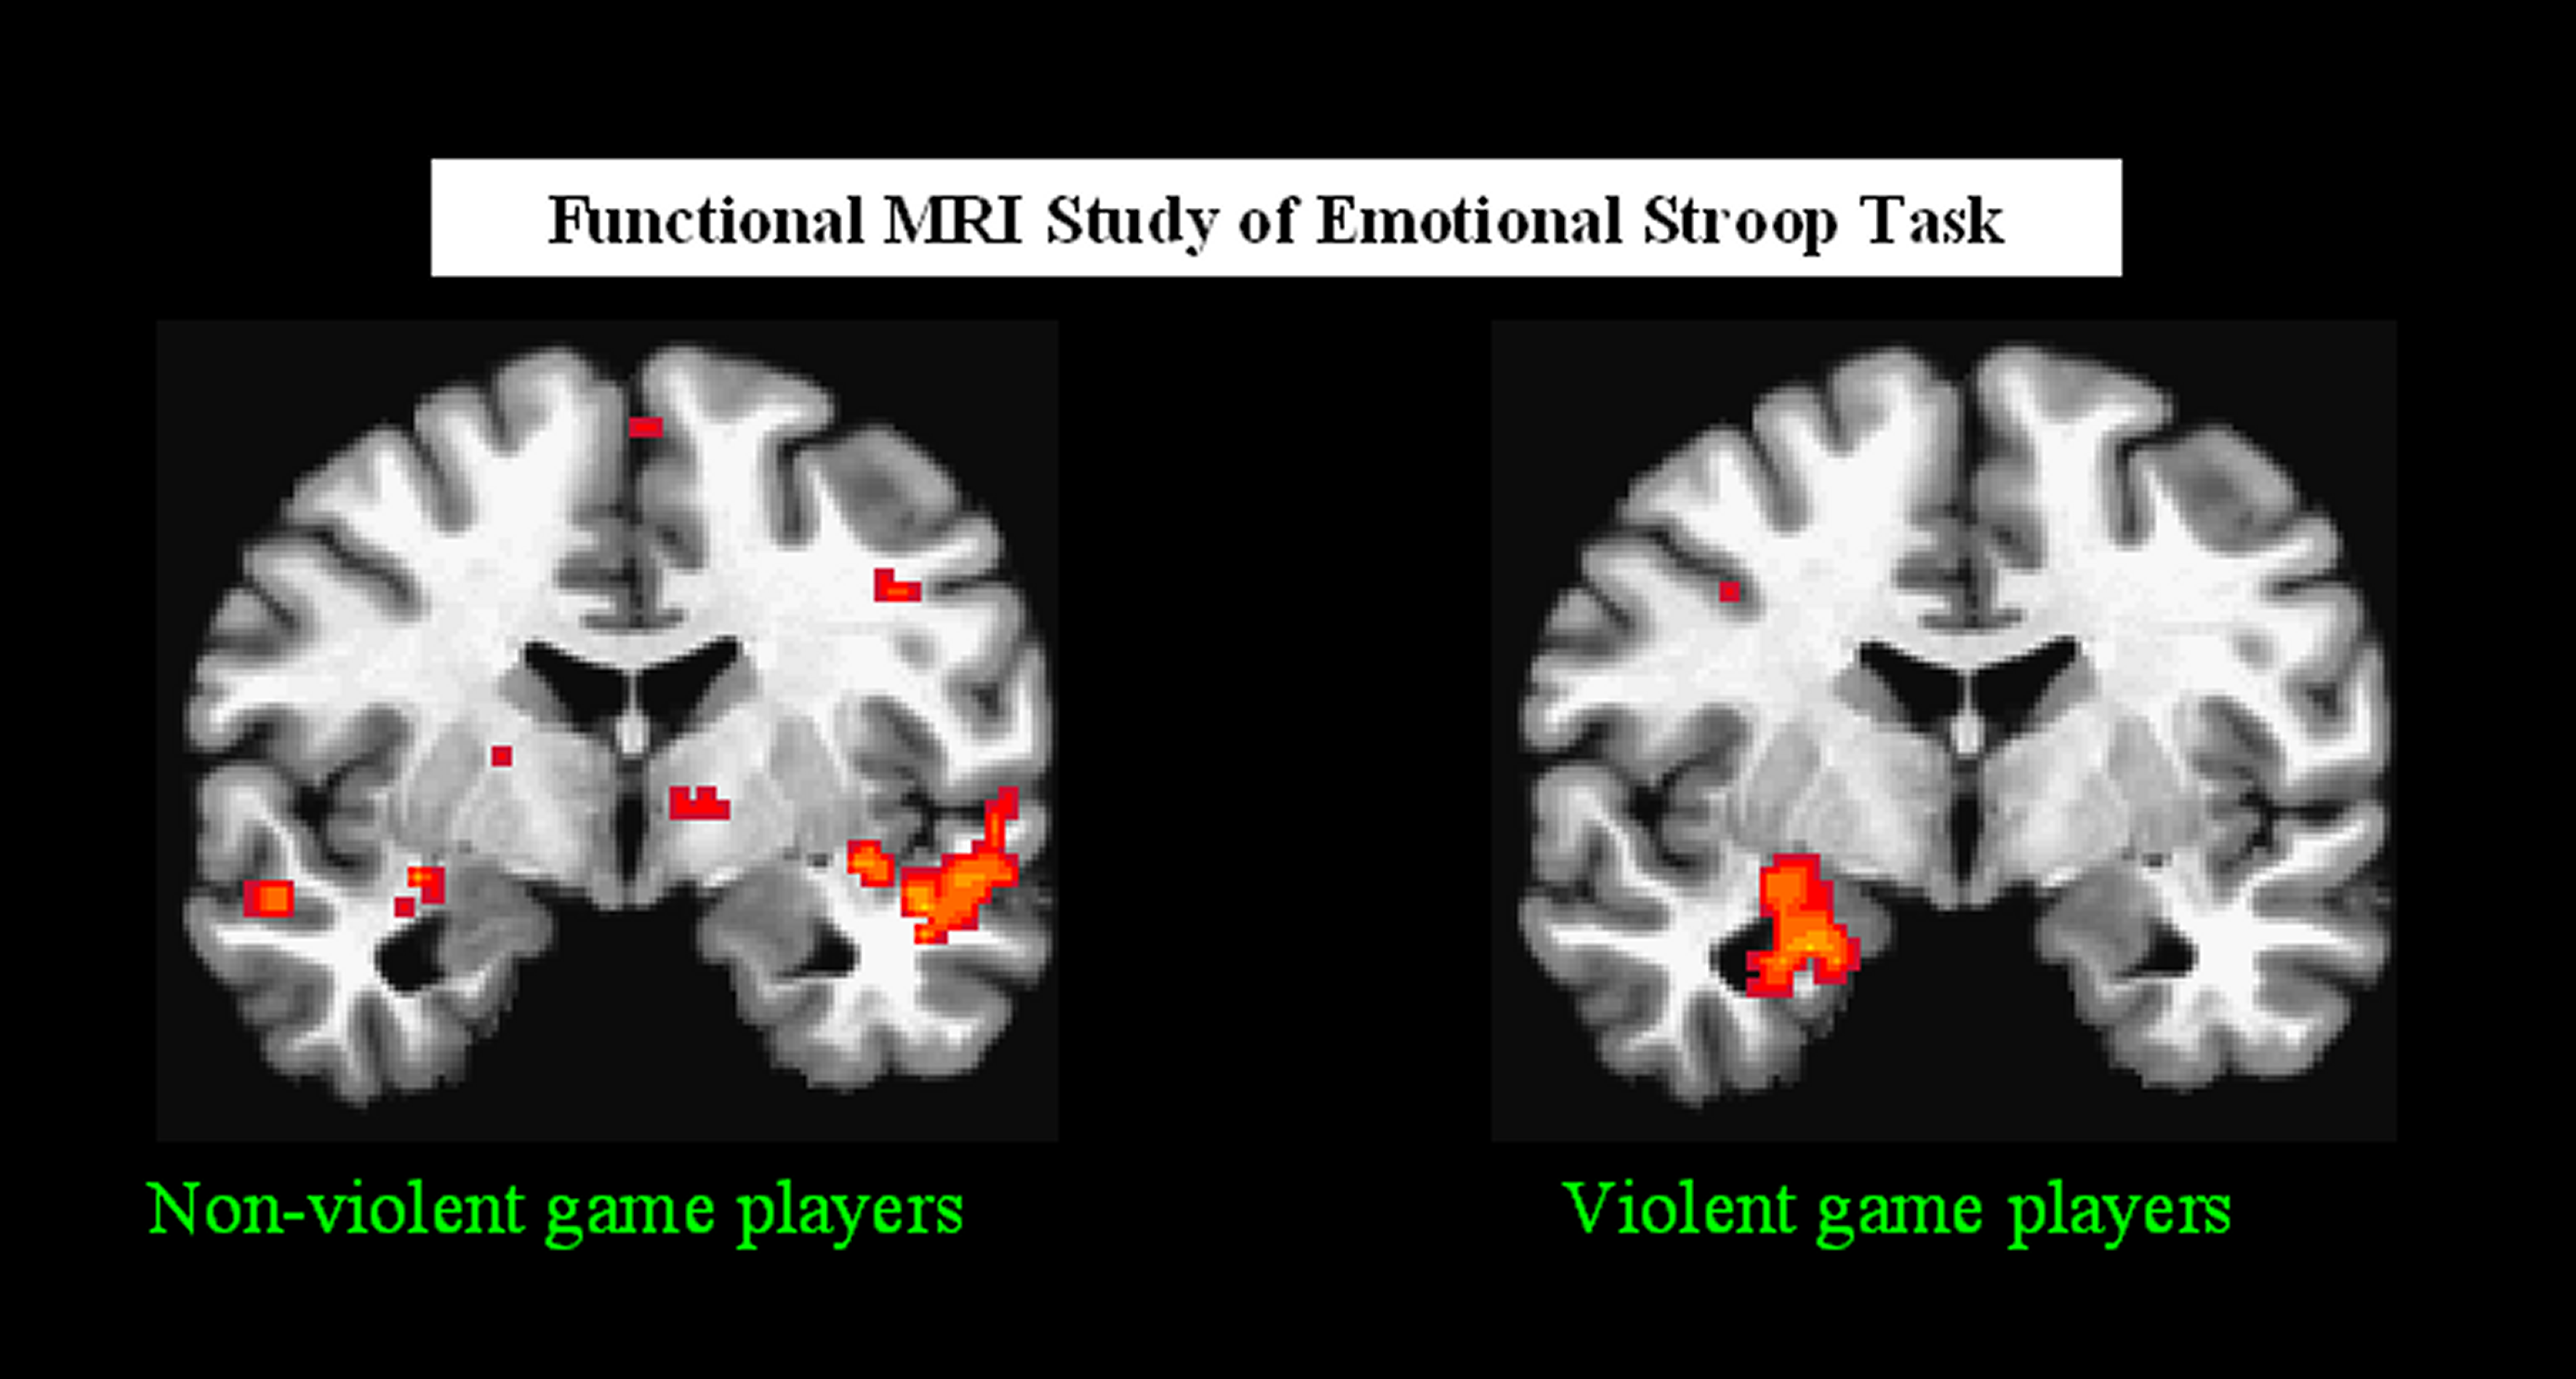 the influence of violent video games to the development of violent habits in children The debate around videogames and violence is getting seriously  throughout  our development, individuals that responded  studies looking for exactly that  link do find effects of violent videogames on long-term aggressive behaviour   honestly examined the effects of videogames on children and adults.